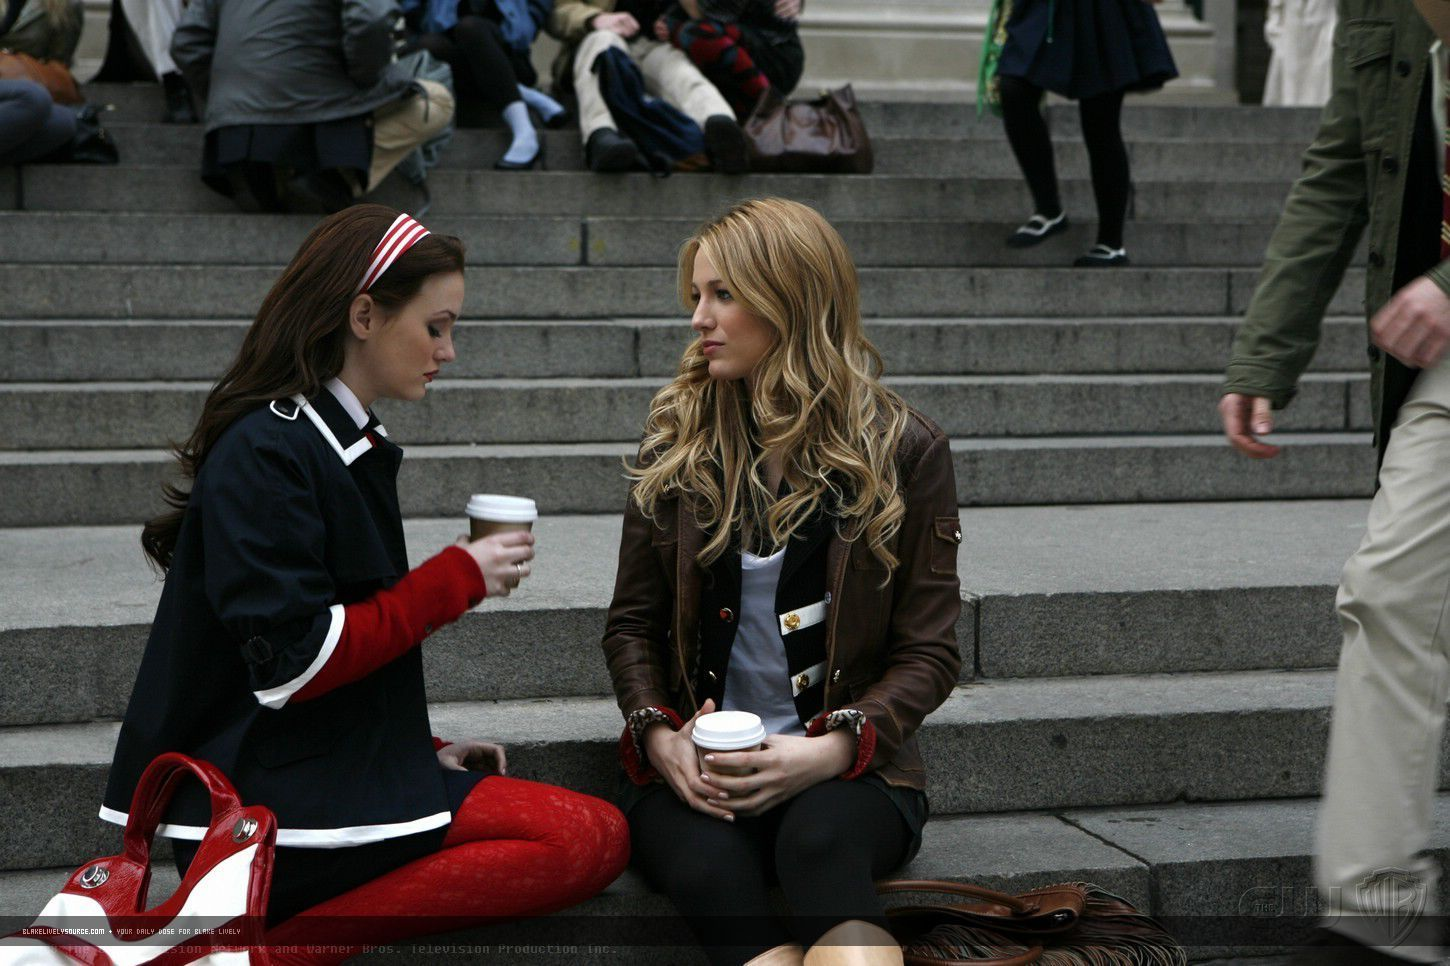 http://images2.fanpop.com/image/photos/10900000/1-16-Episode-Stills-serena-van-der-woodsen-10964390-1450-966.jpg